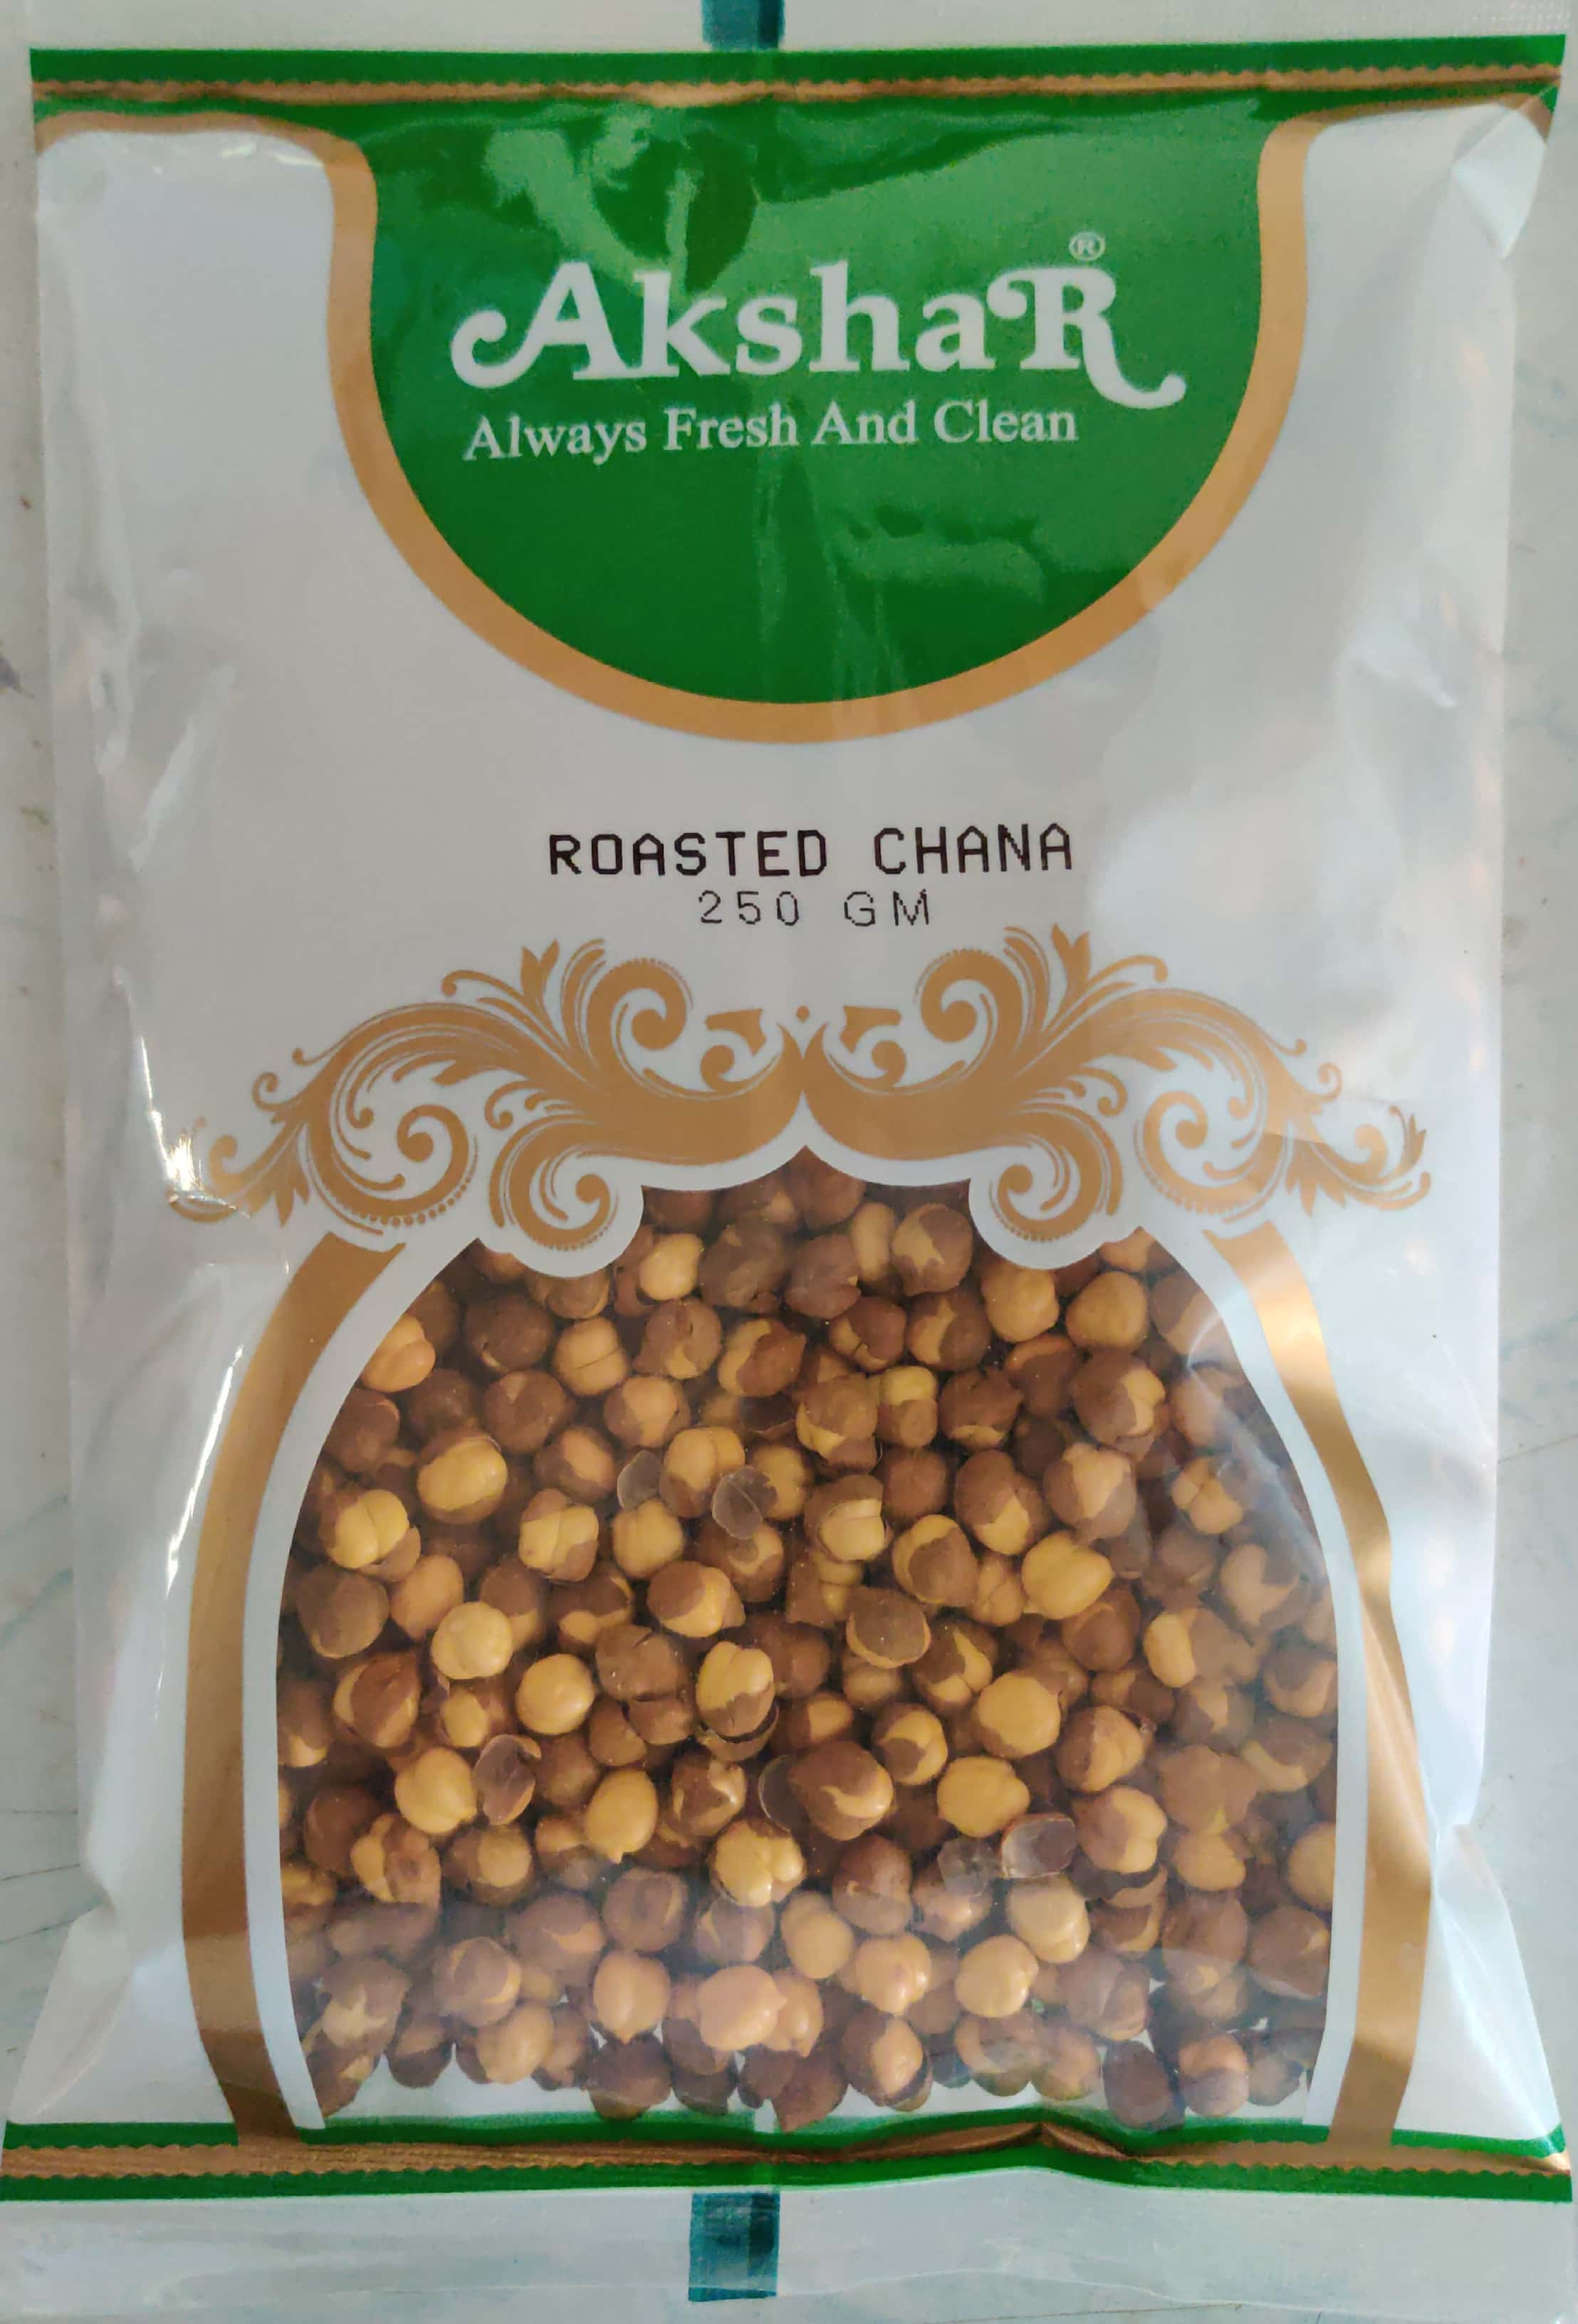 ROASTED CHANA (ROASTED GRAM)